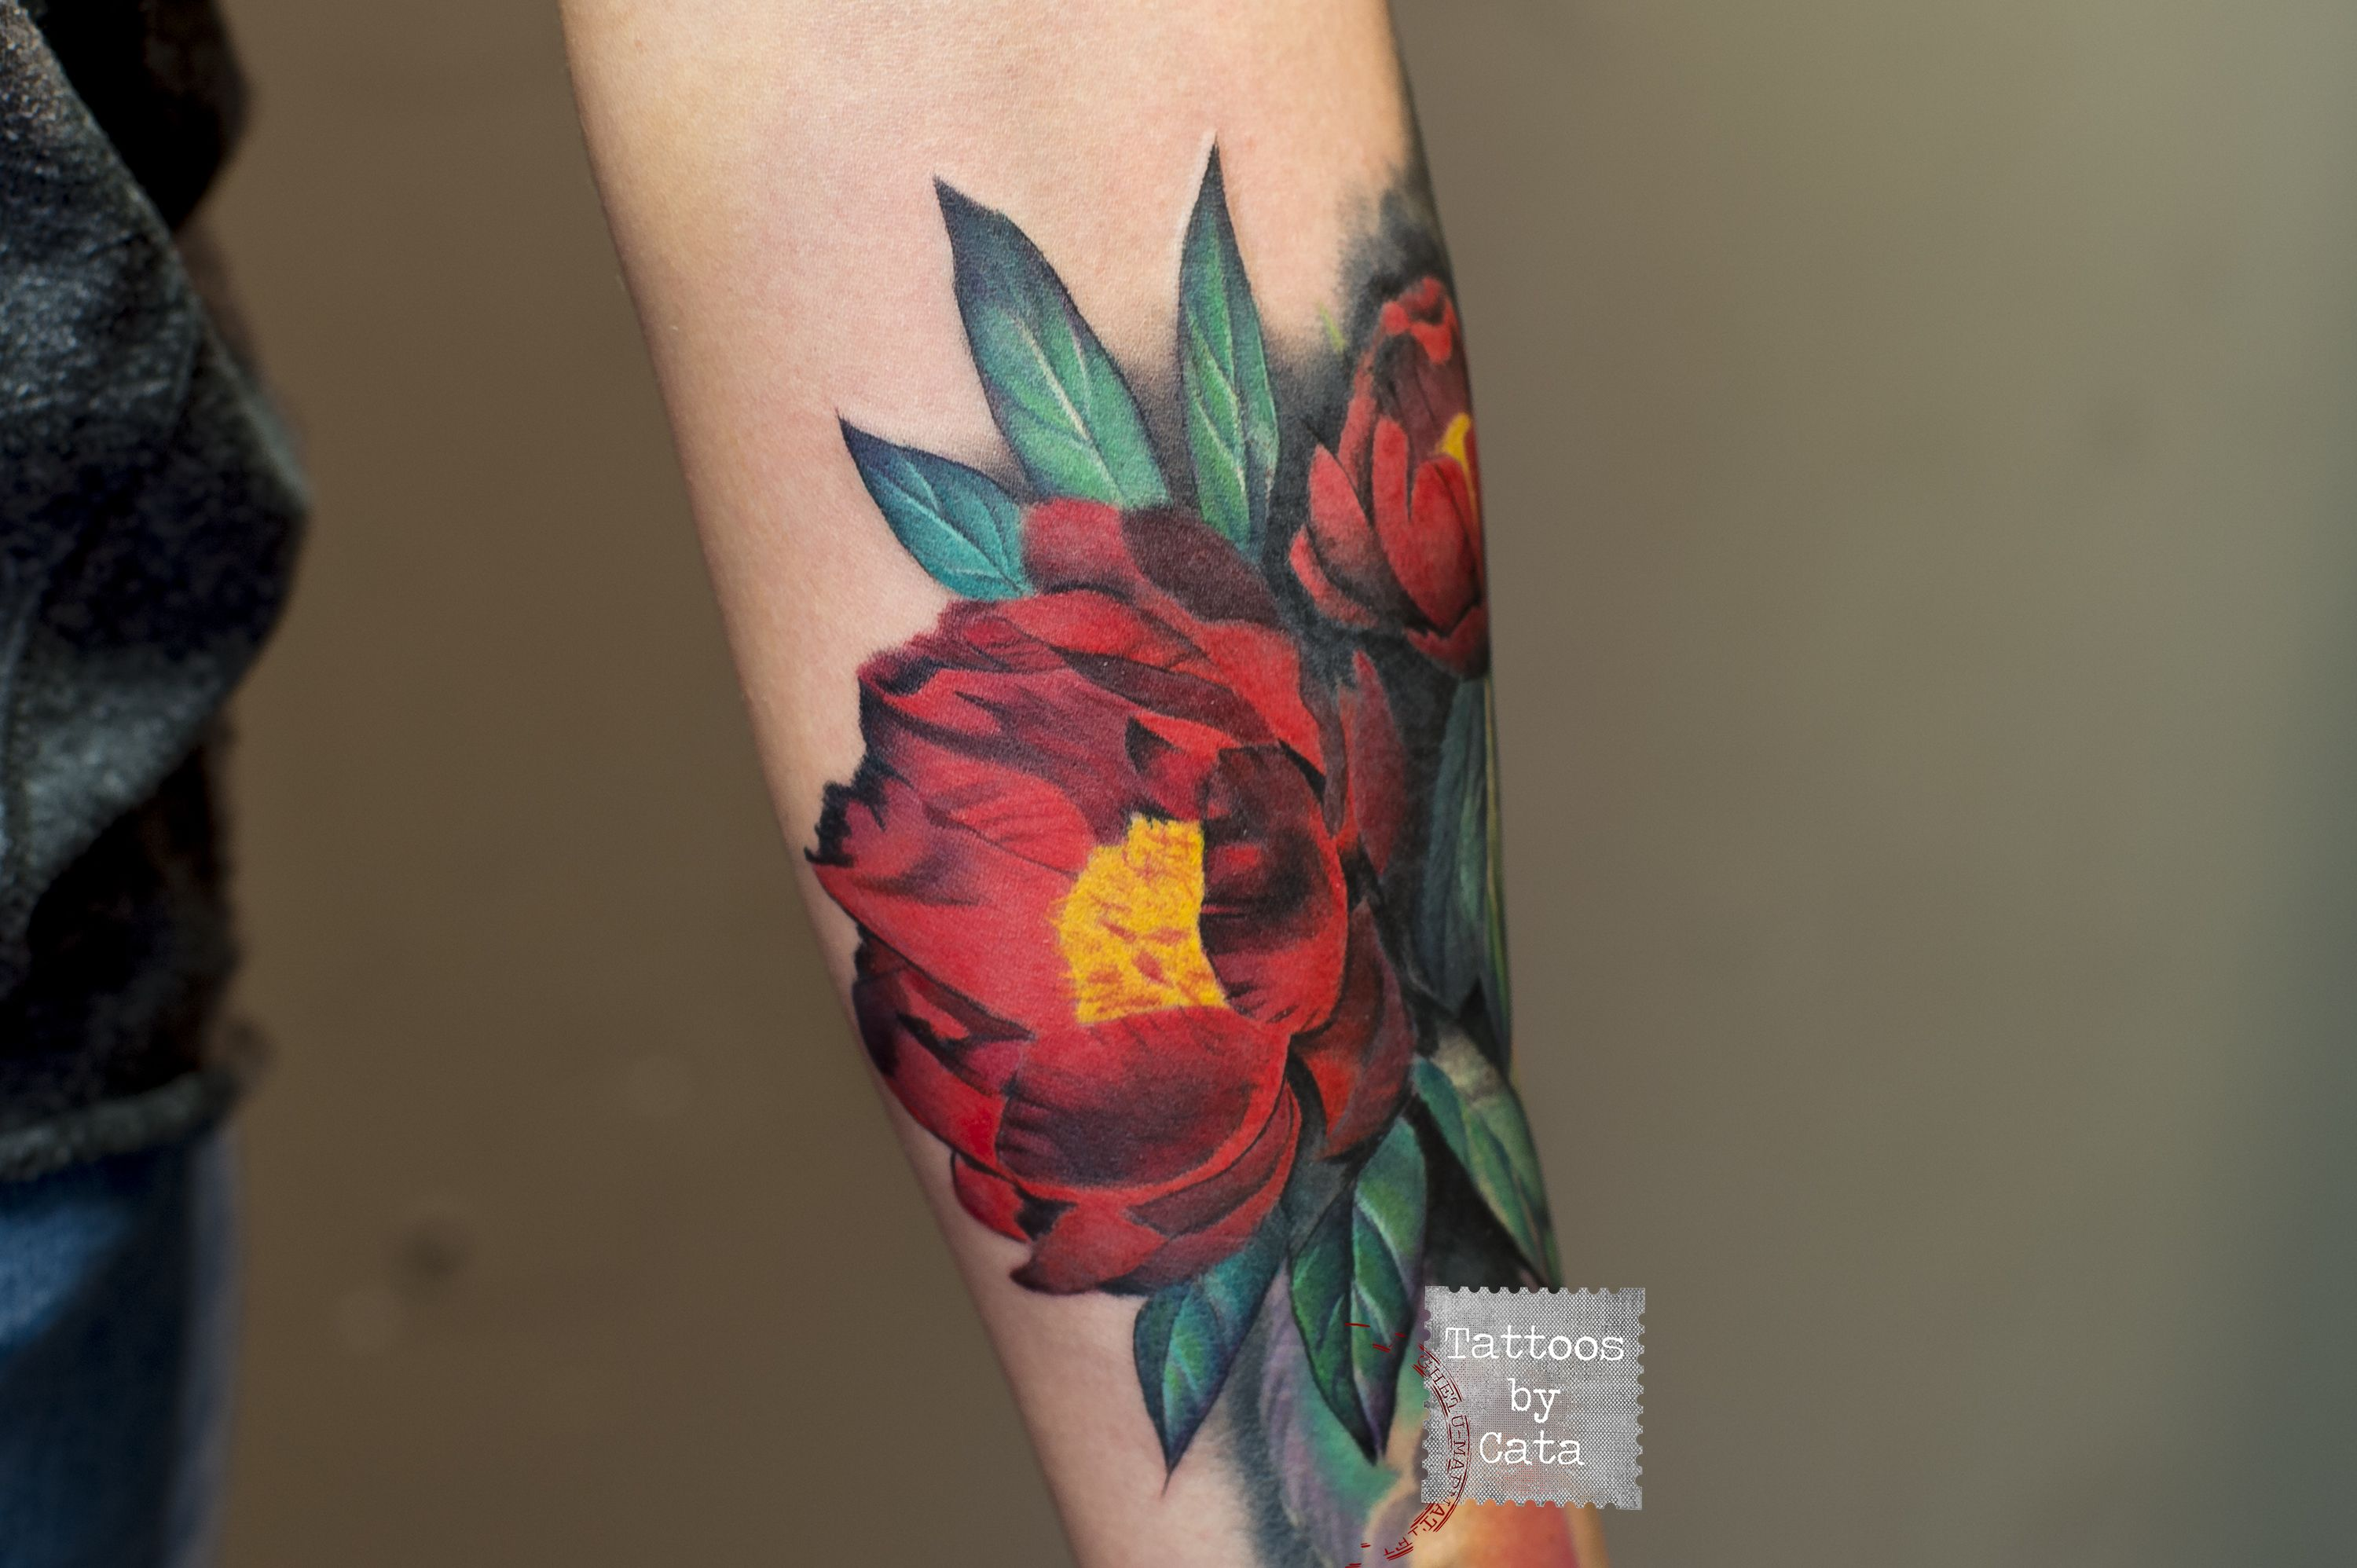 Red peony tattoo tattoo appointments available at tattoosbycata